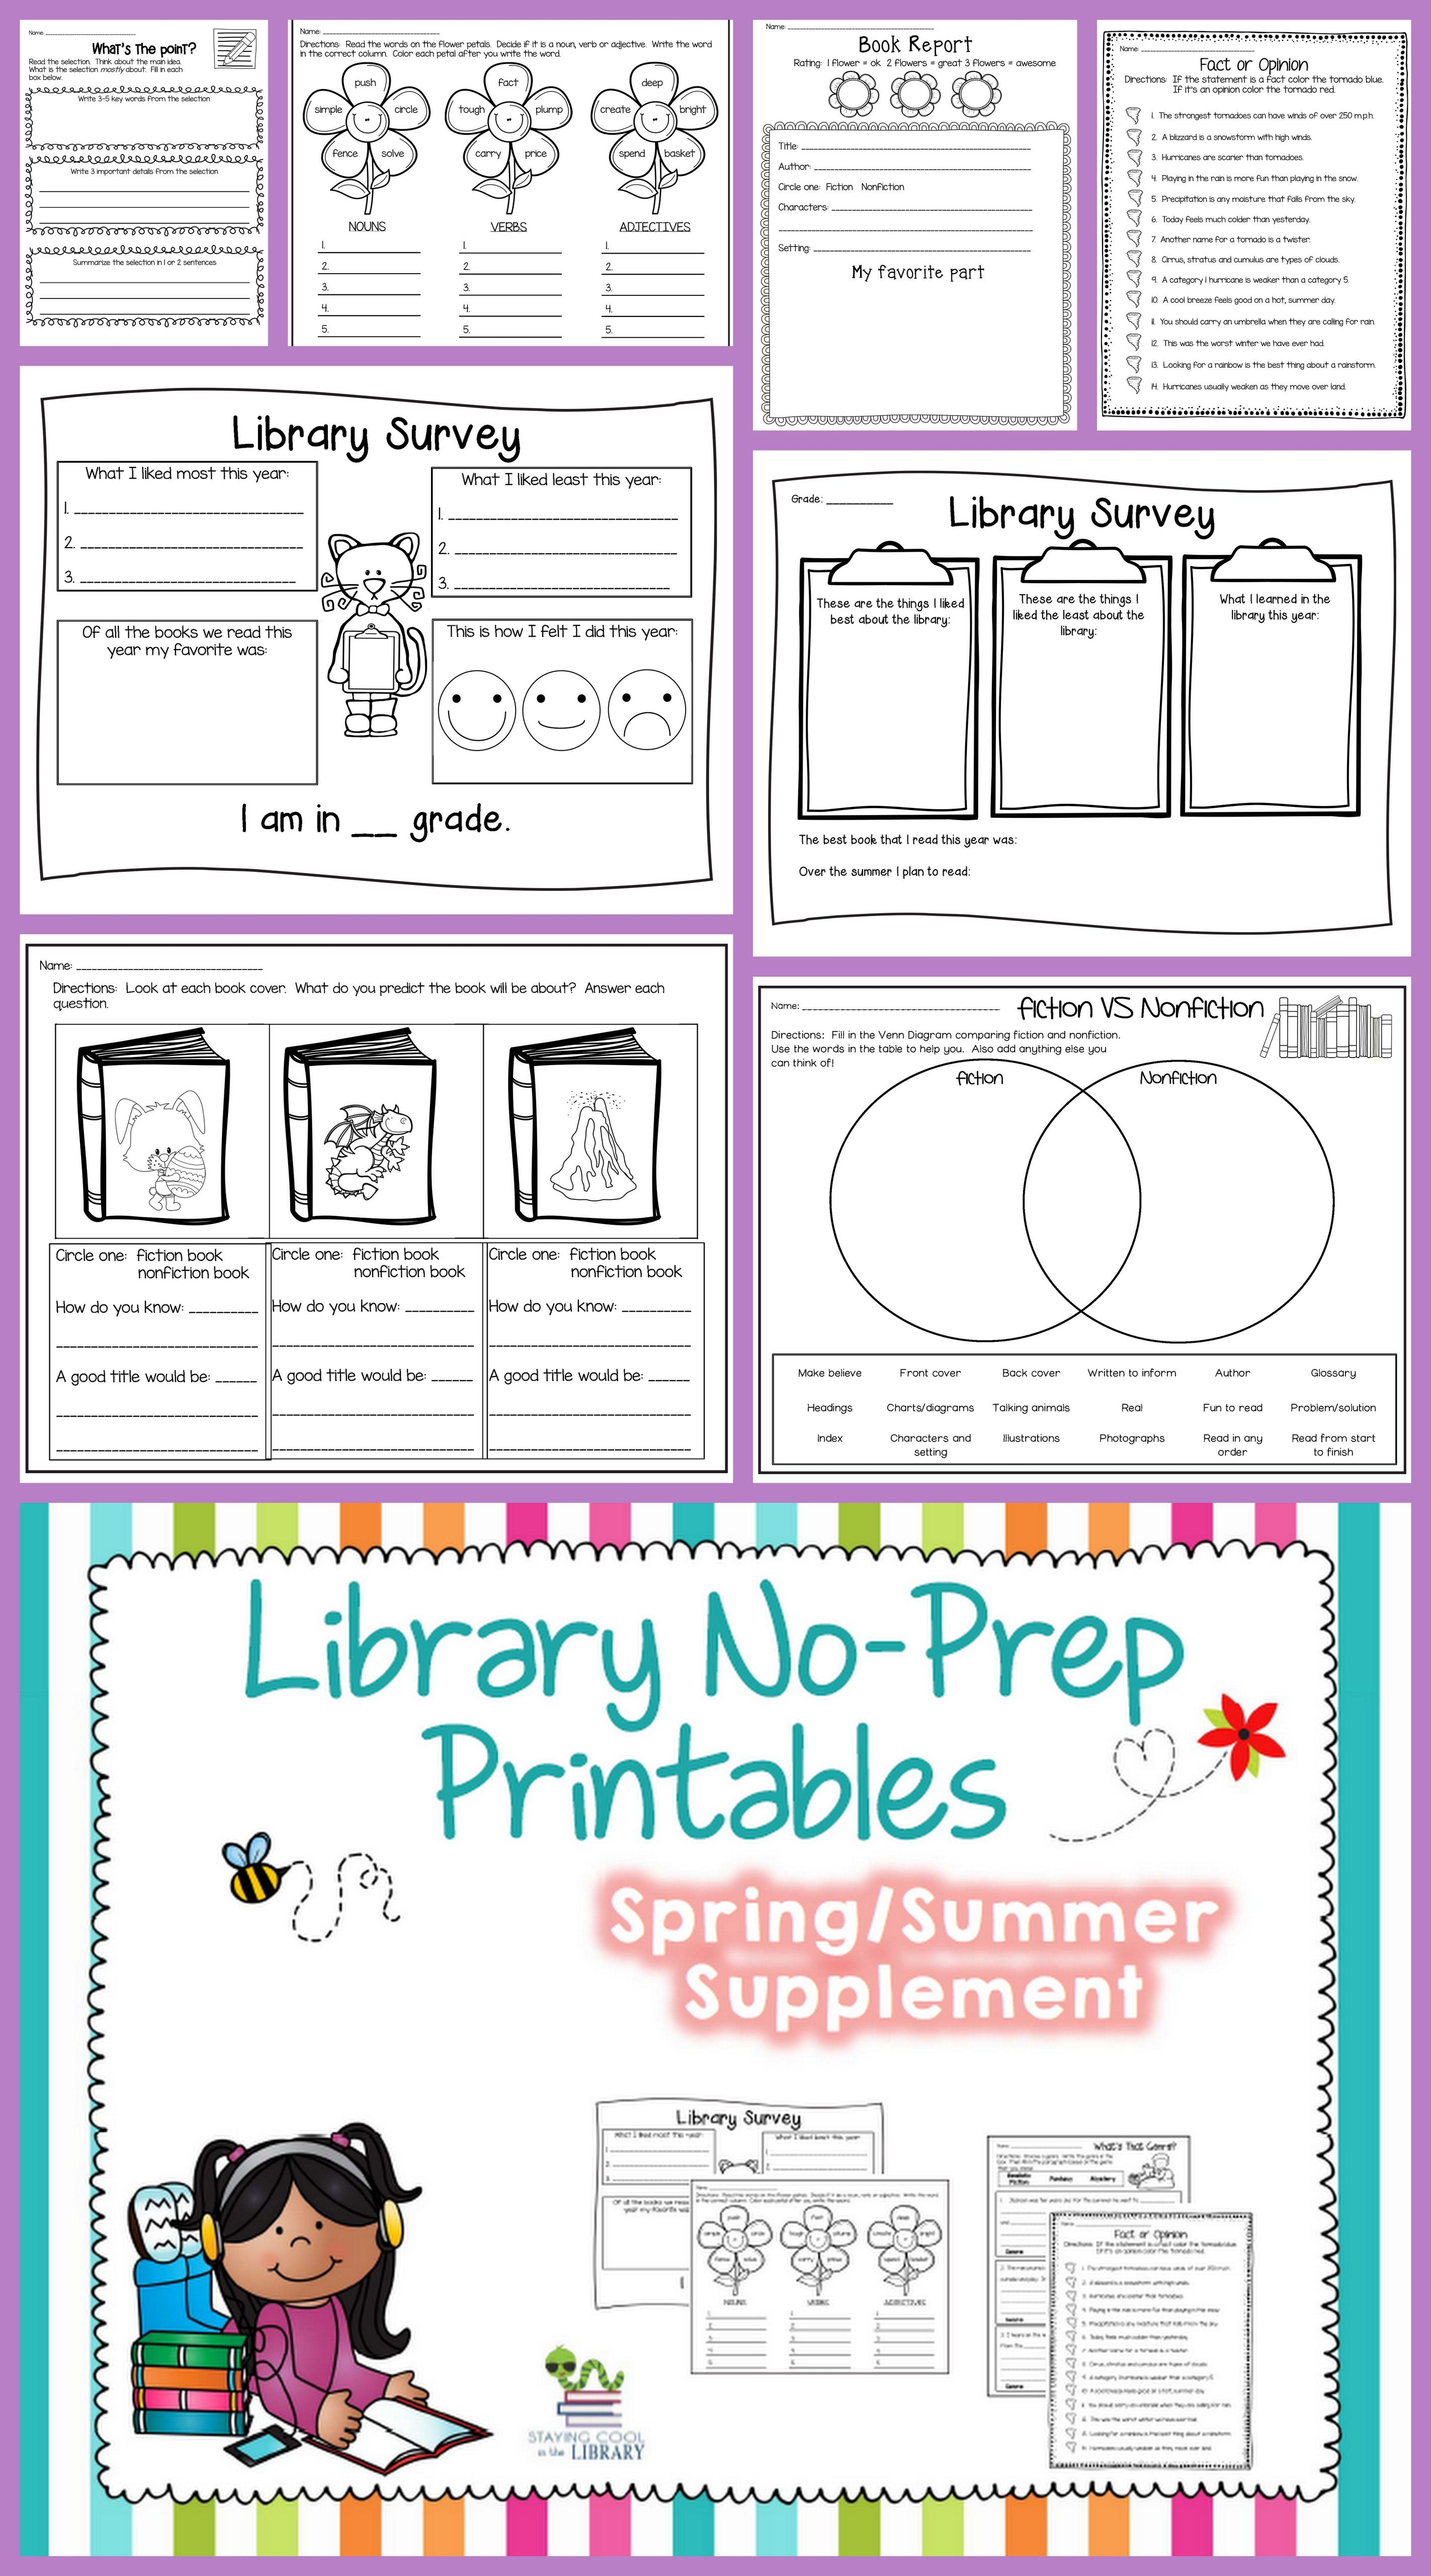 Worksheets For Librarians : Library no prep printables spring summer and